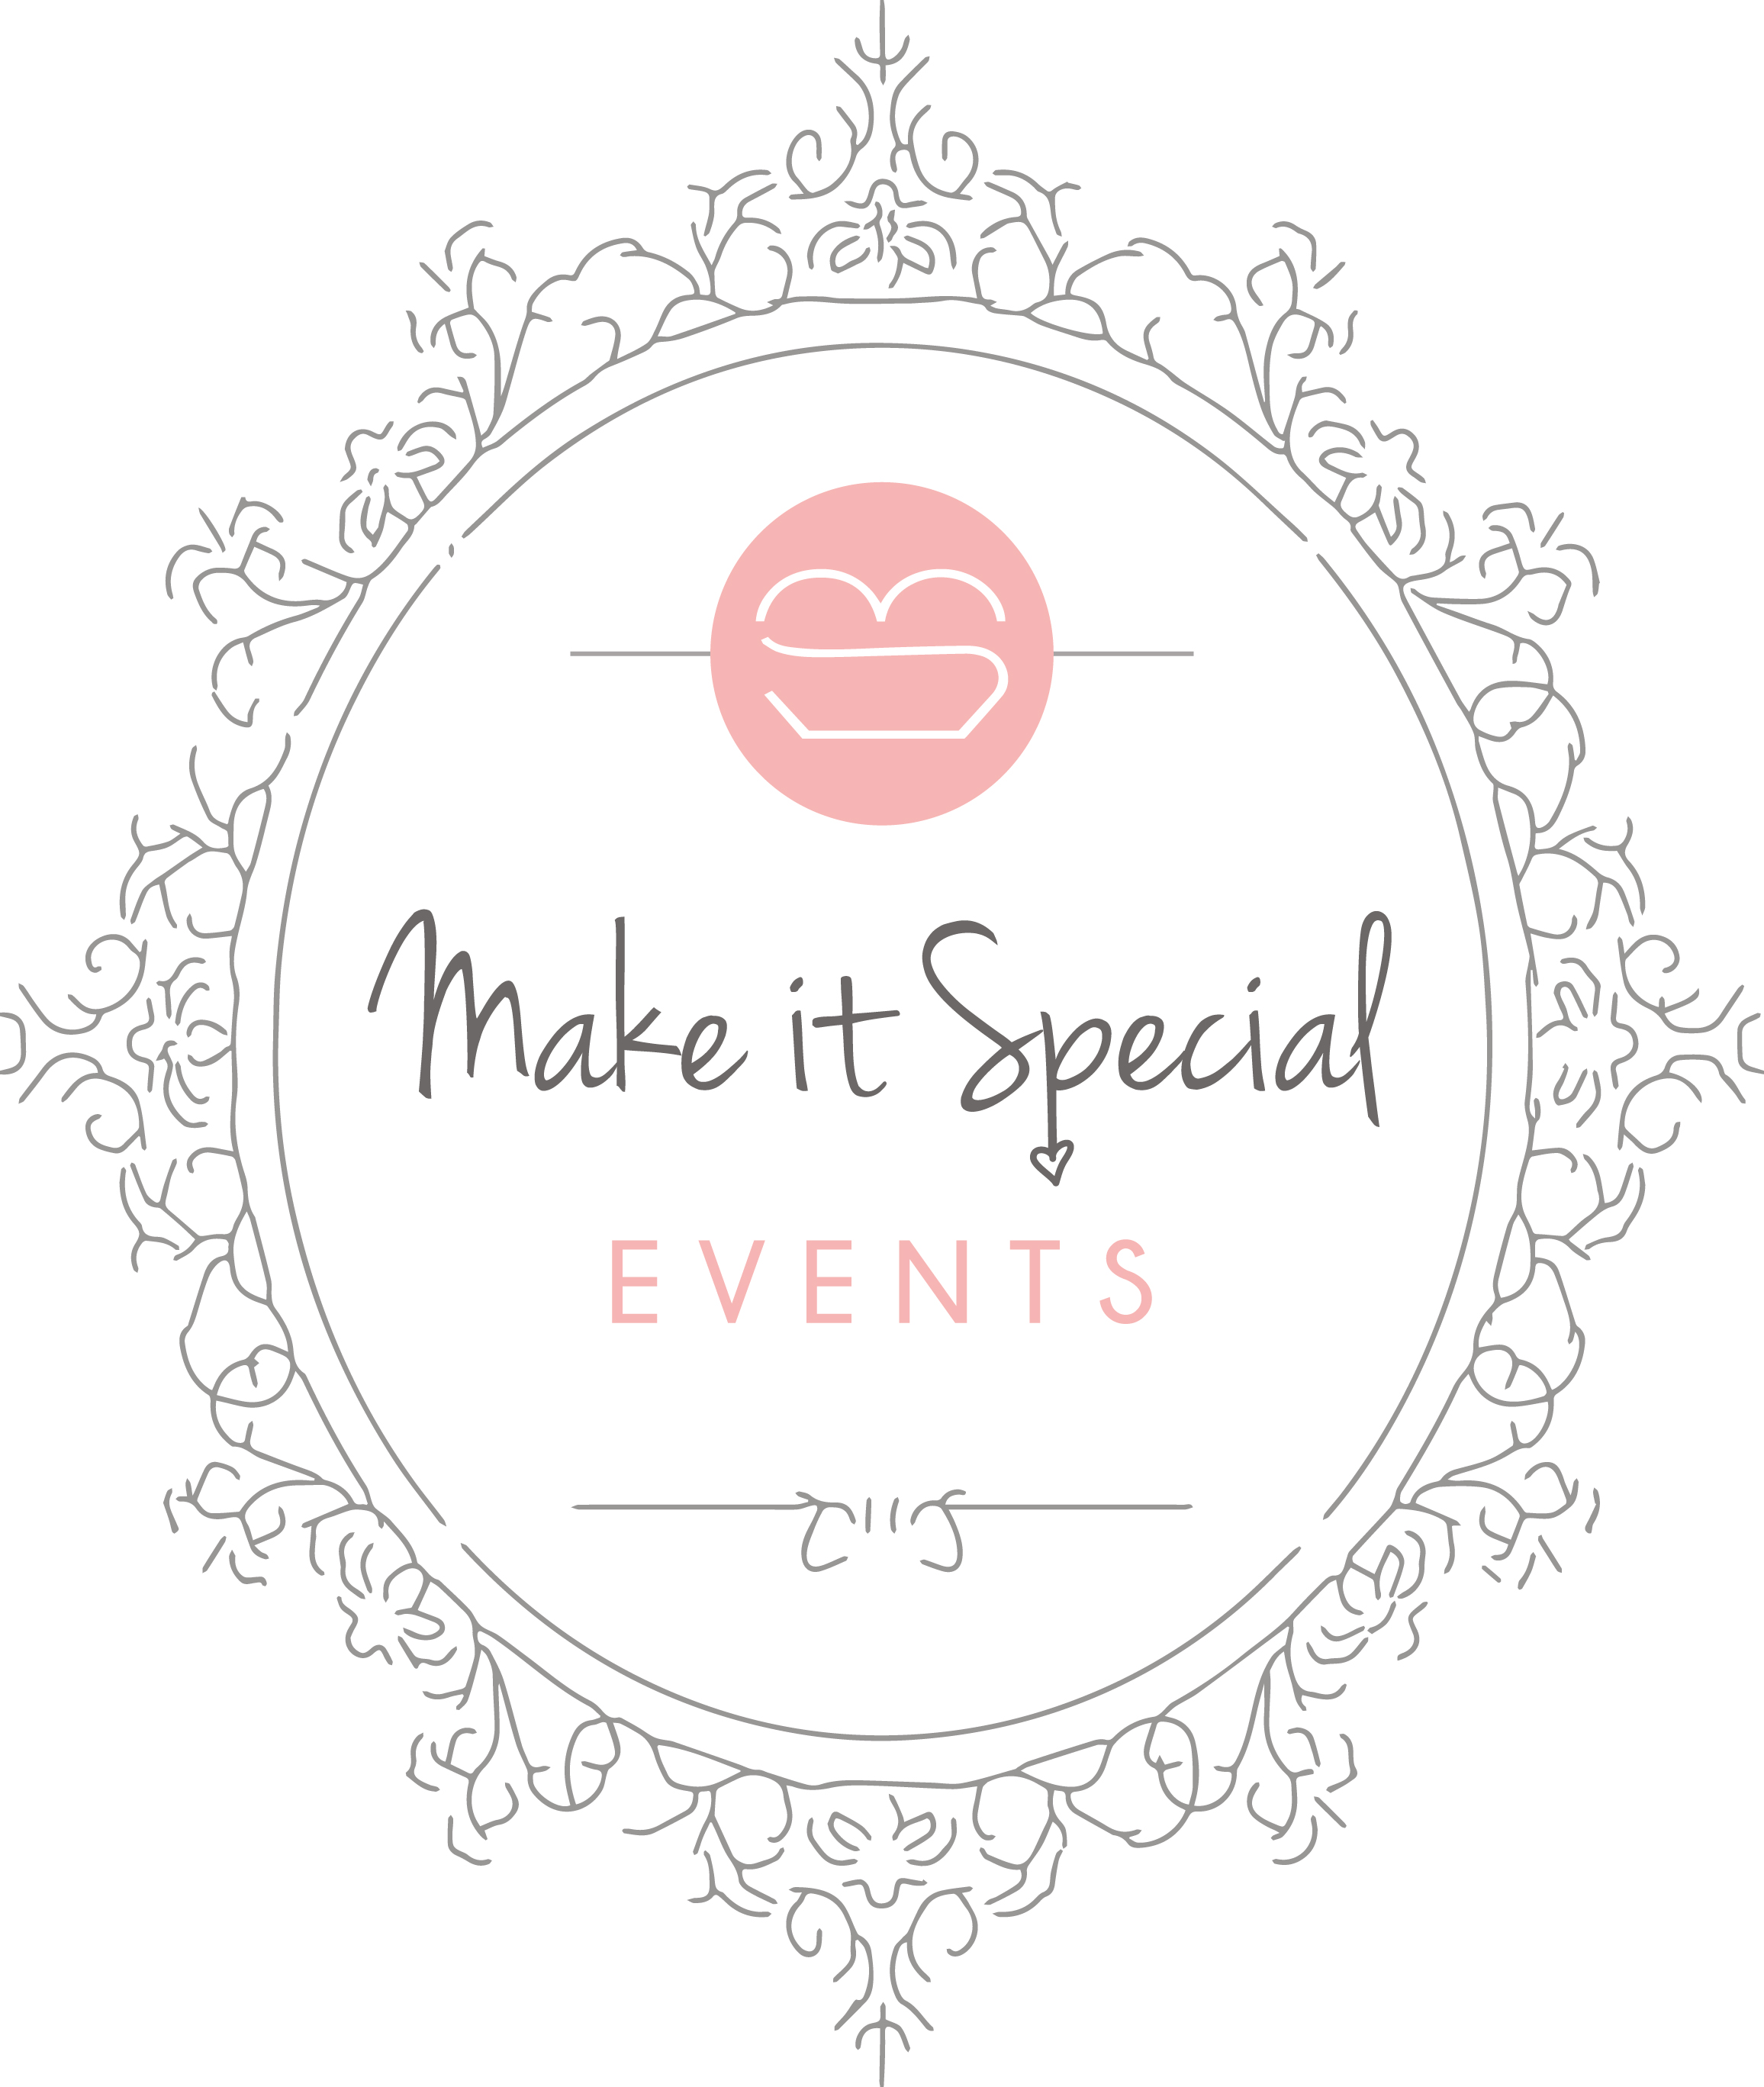 Make it Special Events